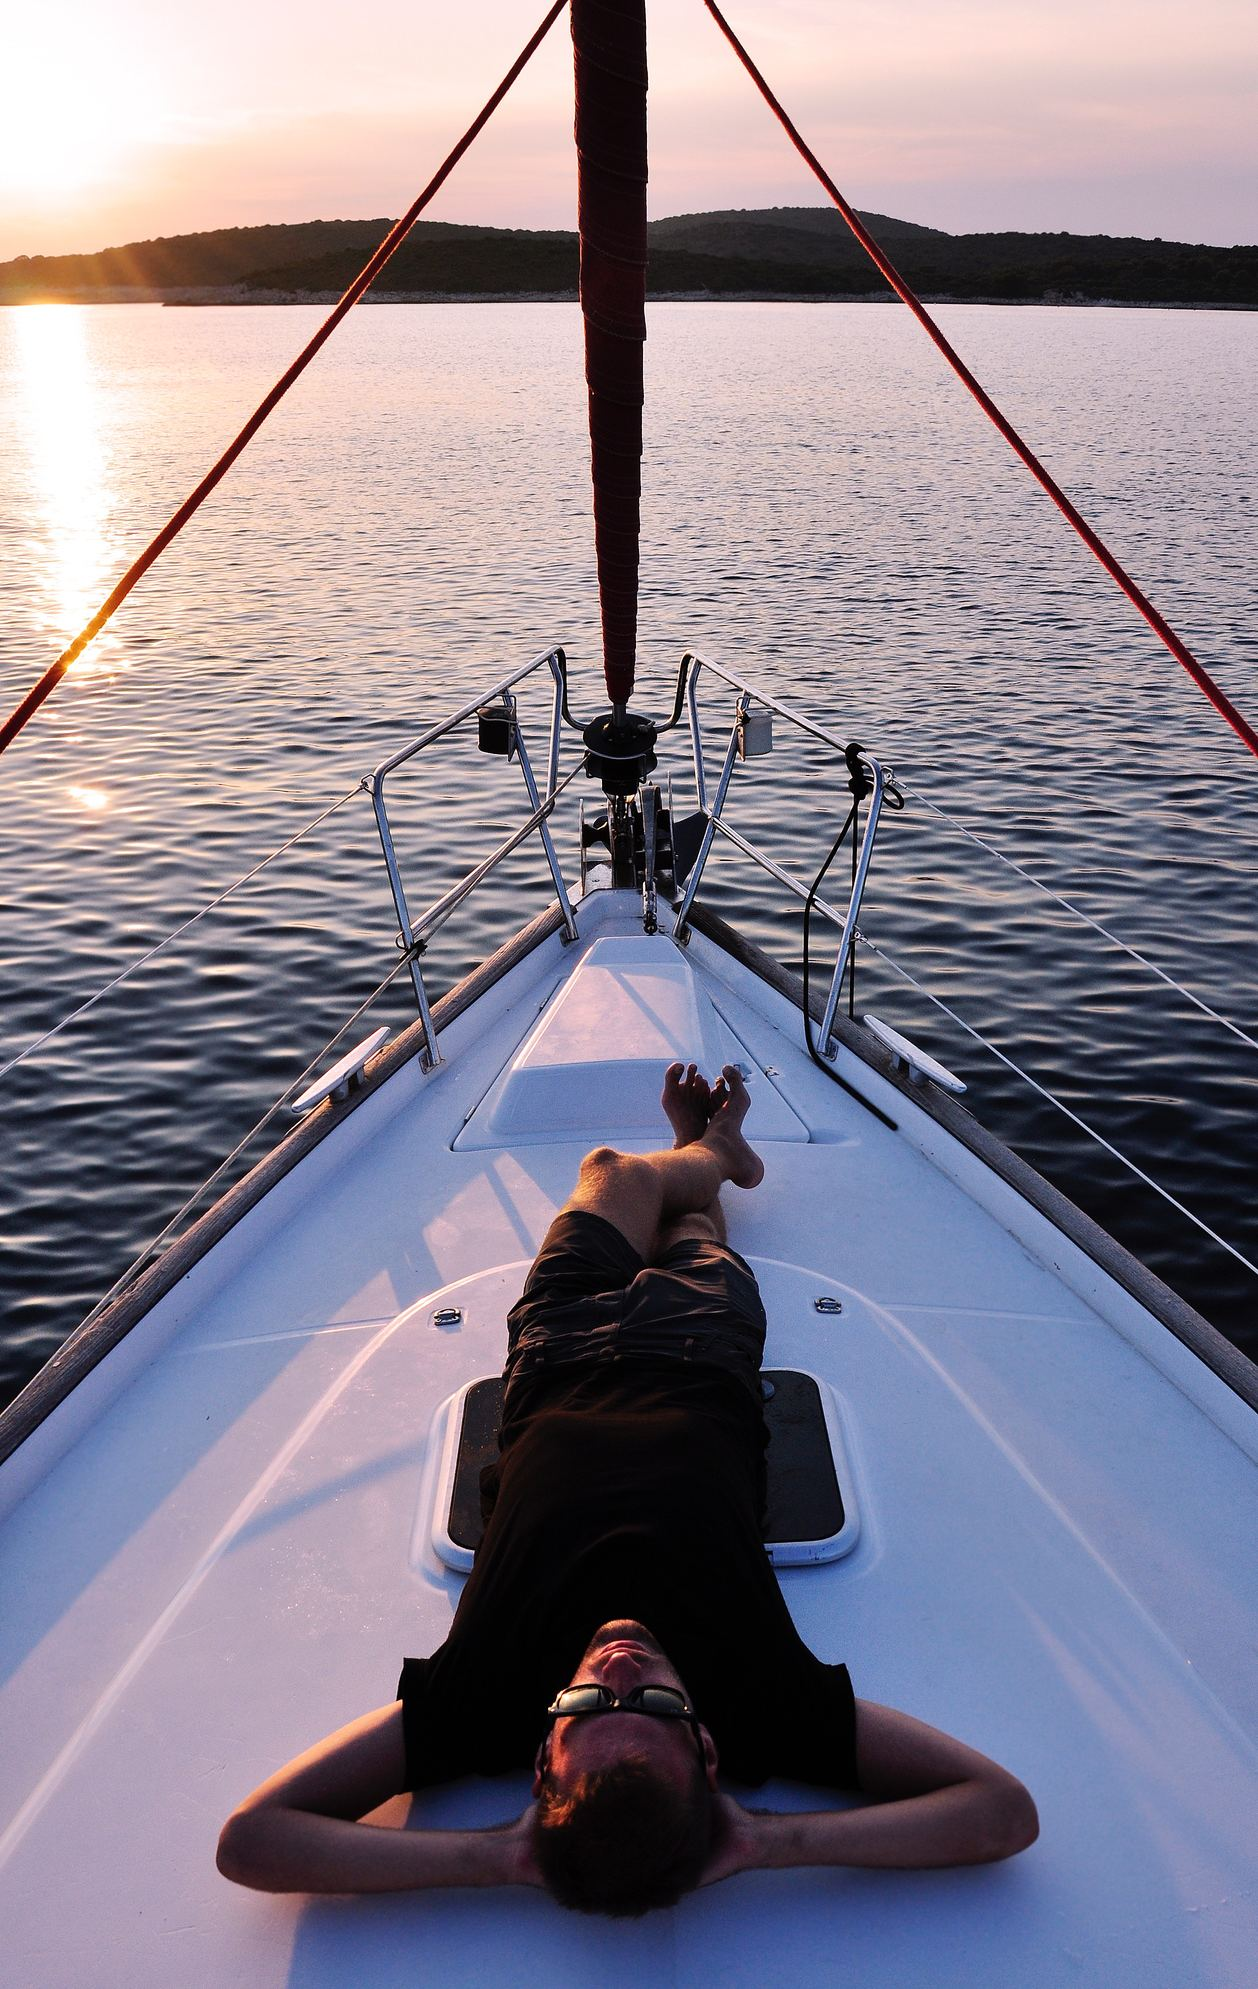 enjoy sailing, not owning